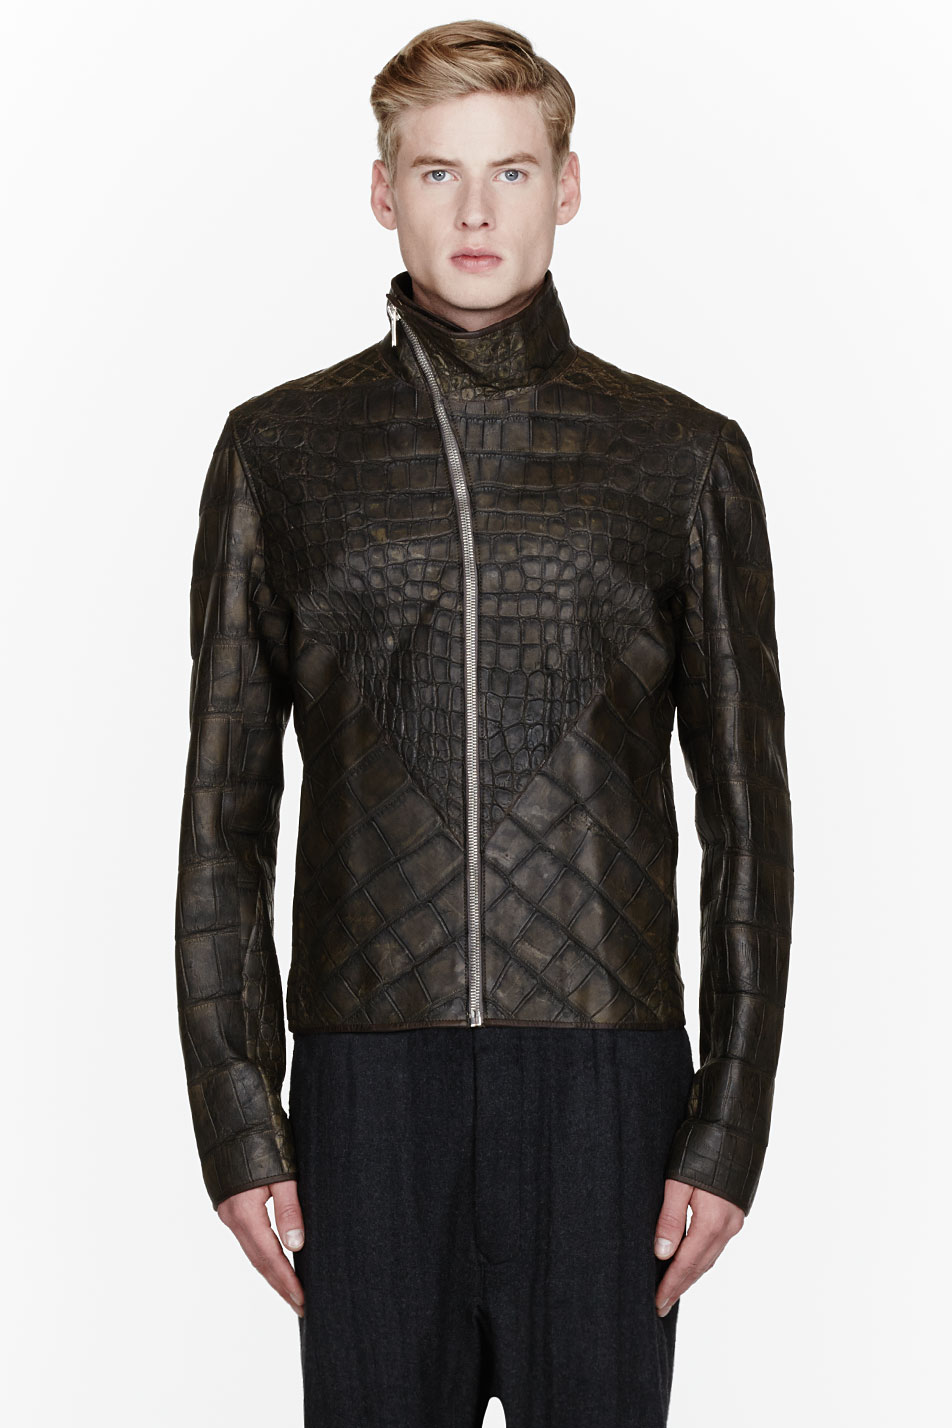 Rick Owens $50,000 leather jacket alligator menswear lookbook 1